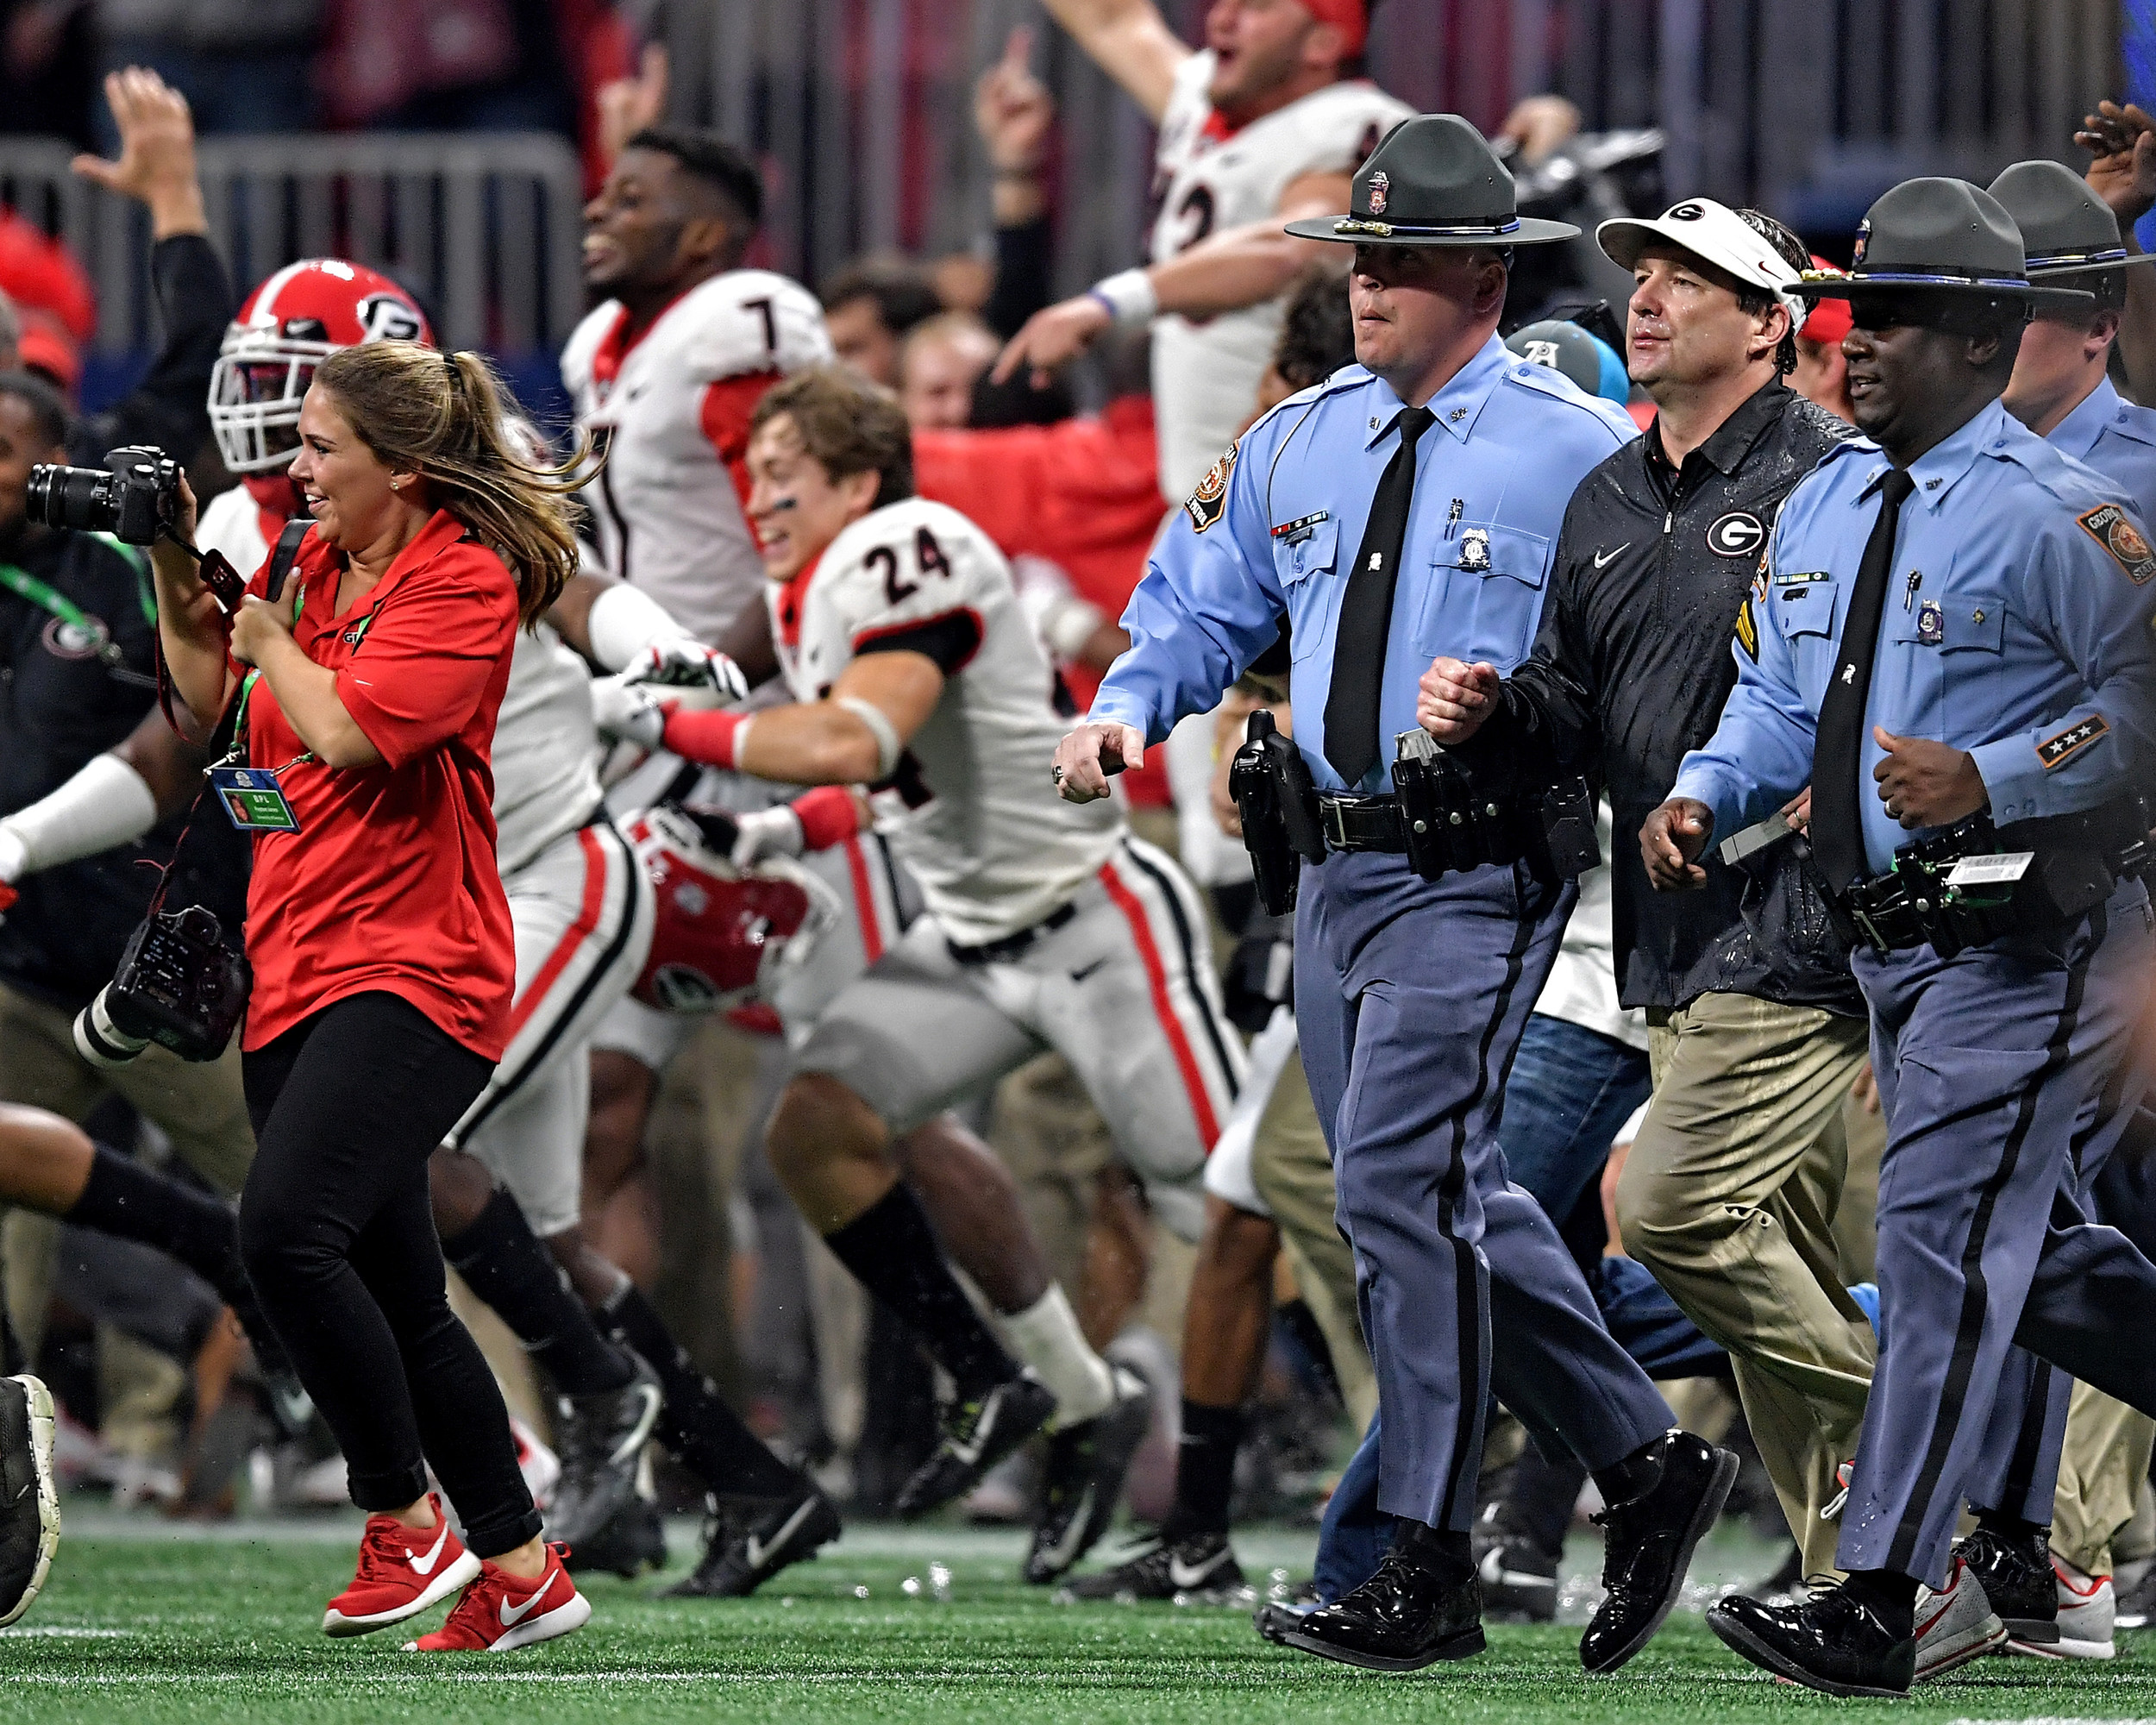 From the post-game celebration and trophy presentation following Georgia's win over Auburn in the 2017 SEC Championship Game between the Georgia Bulldogs and the Auburn Tigers on Dec. 2, 2017, at the Mercedes-Benz Stadium in Atlanta, Ga. Georgia won 28-7. (Photo by Lee Walls)